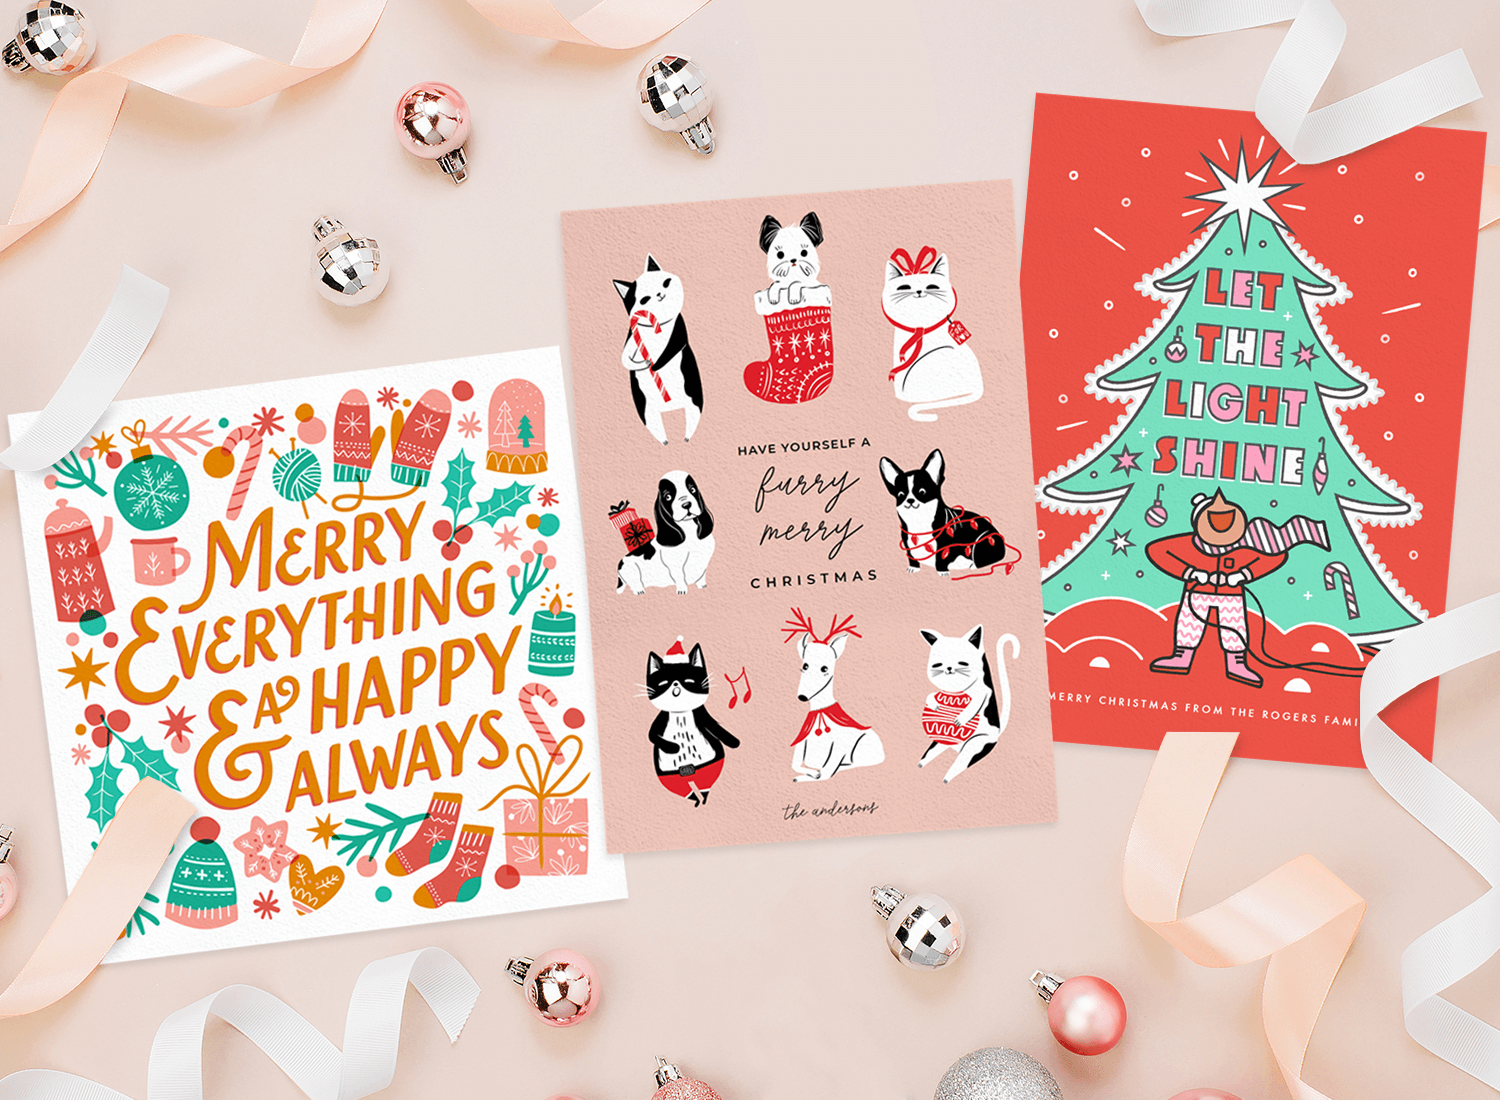 Christmas card wording: Three Christmas cards